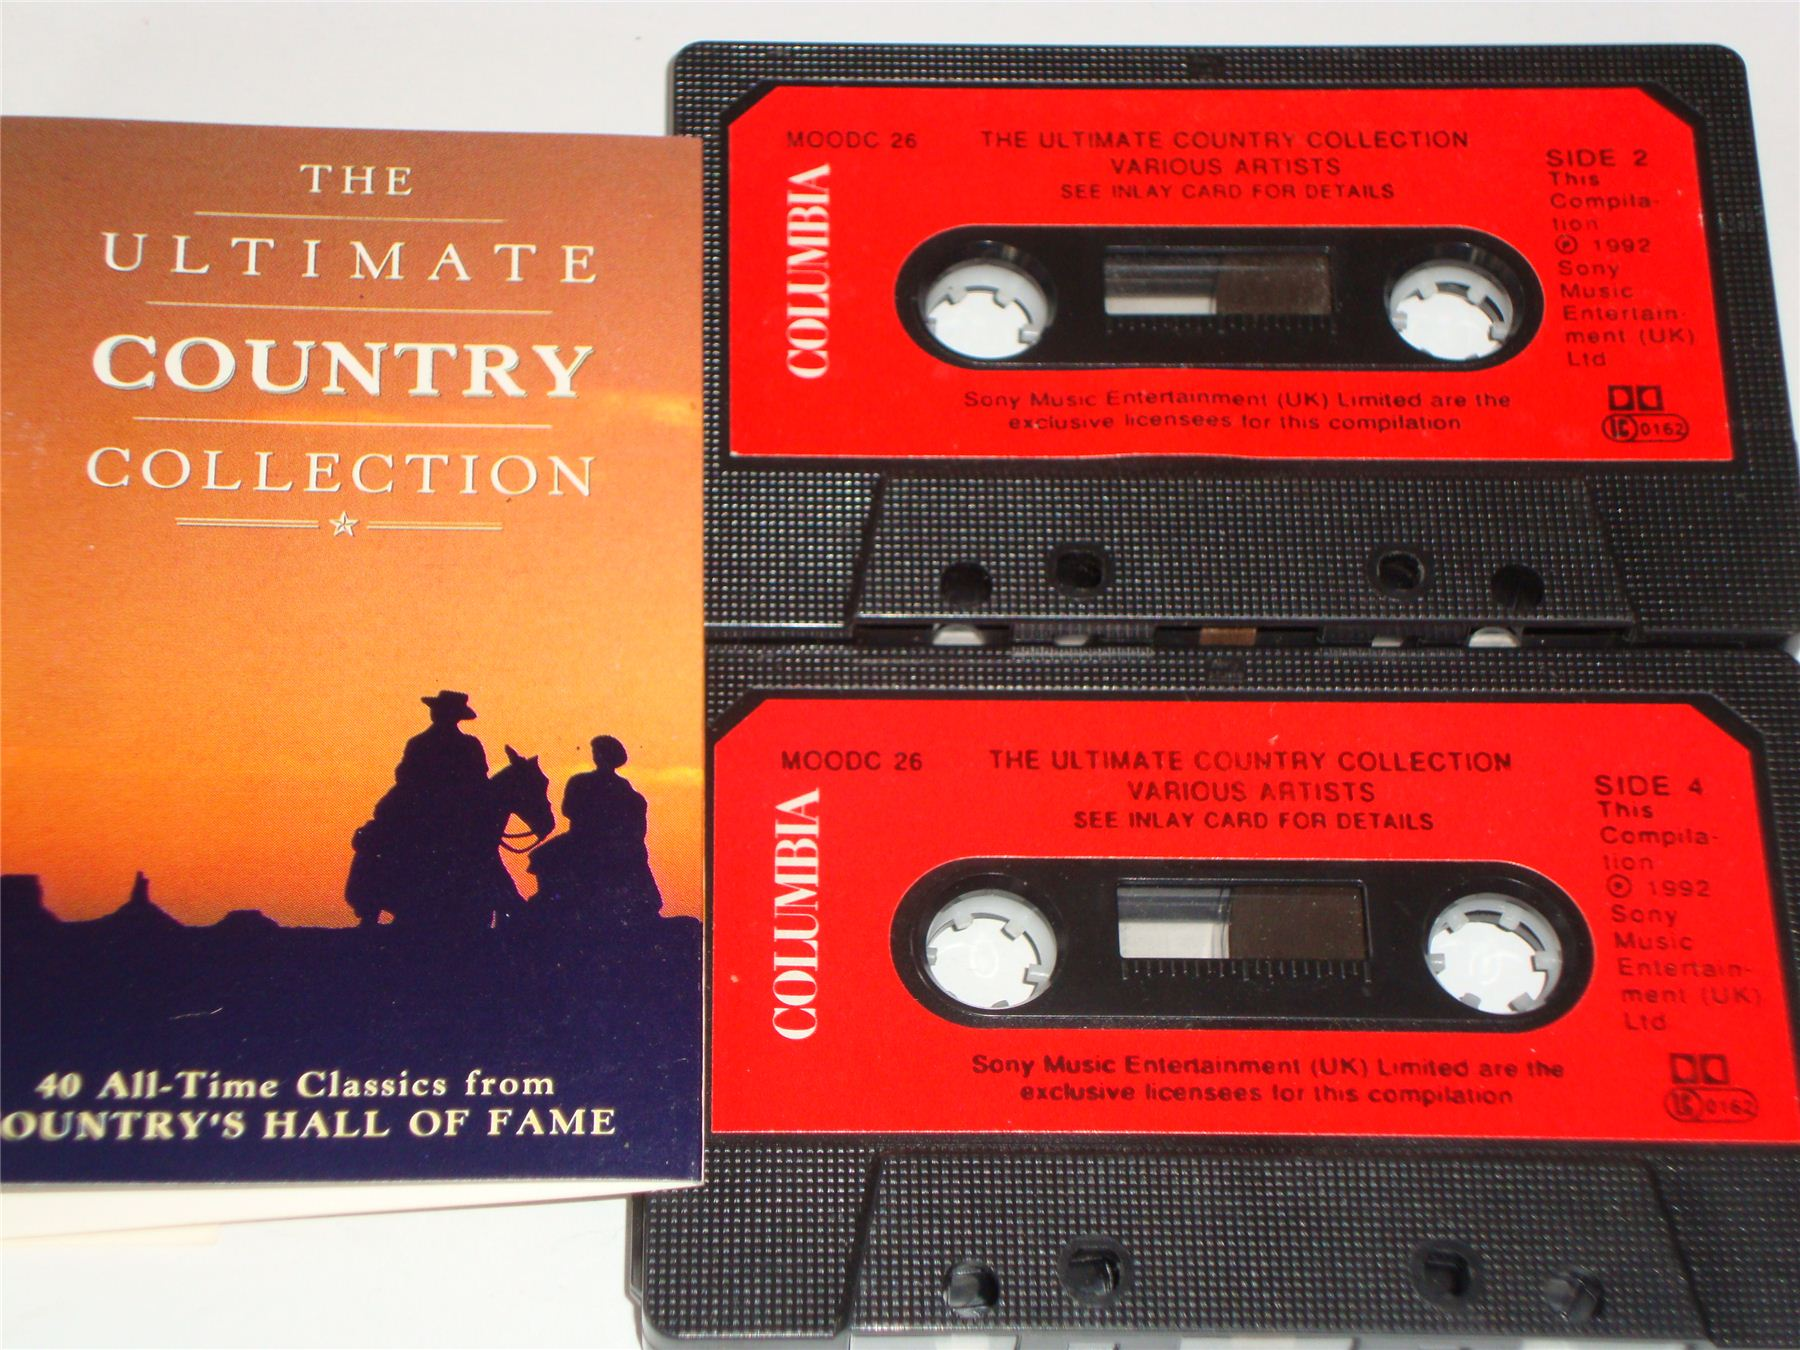 Country The Ultimate Collection: The Ultimate Country Collection Double